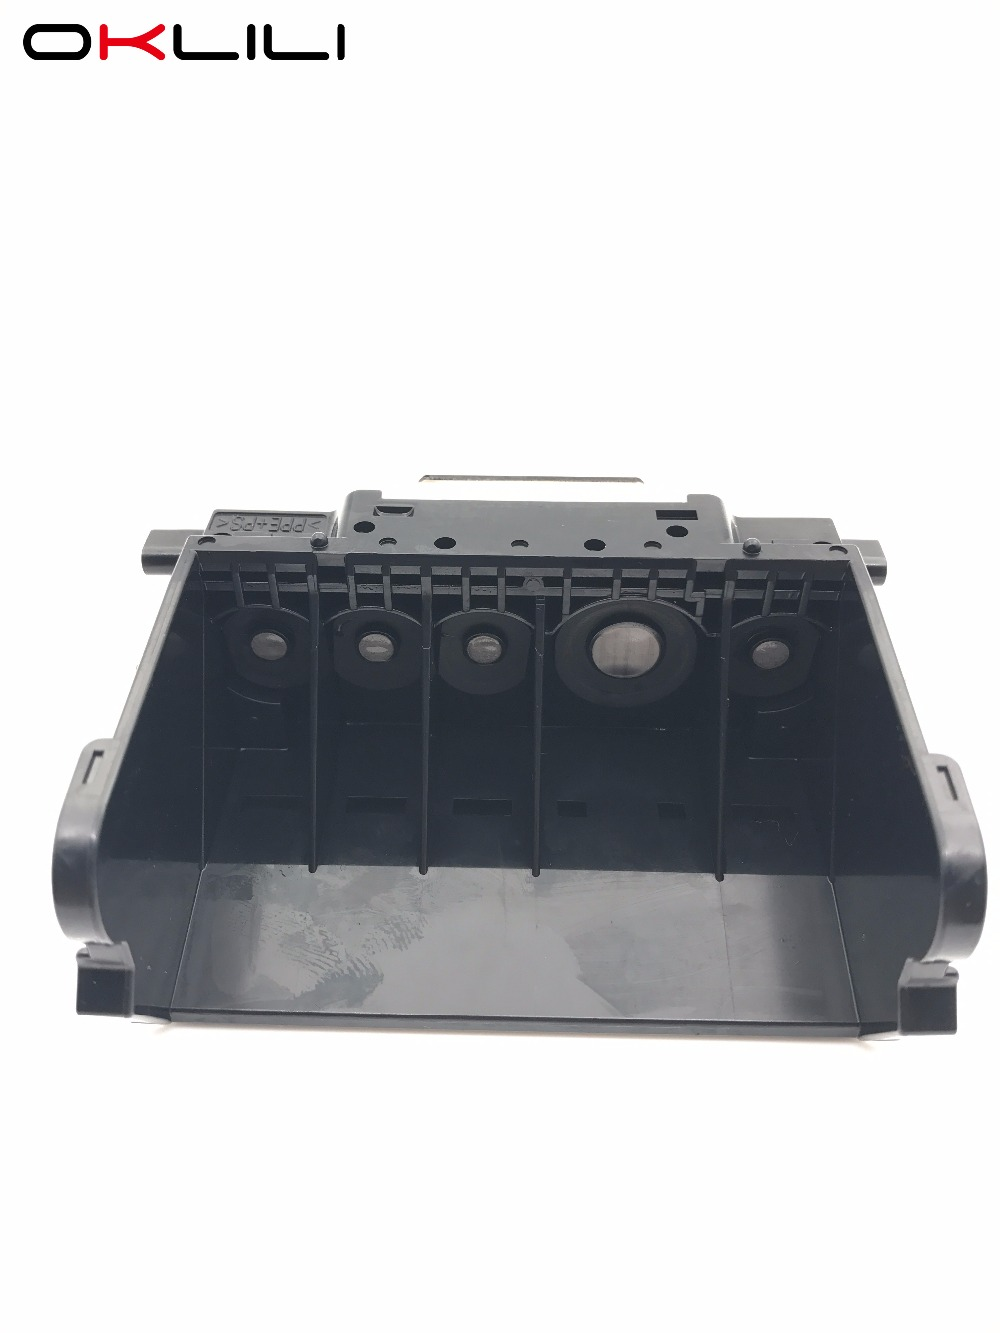 OKLILI ORIGINAL QY6-0075 QY6-0075-000 Printhead Print Head Printer Head for Canon iP5300 MP810 iP4500 MP610 MX850 original qy6 0075 qy6 0075 000 printhead print head printer head for canon ip5300 mp810 ip4500 mp610 mx850